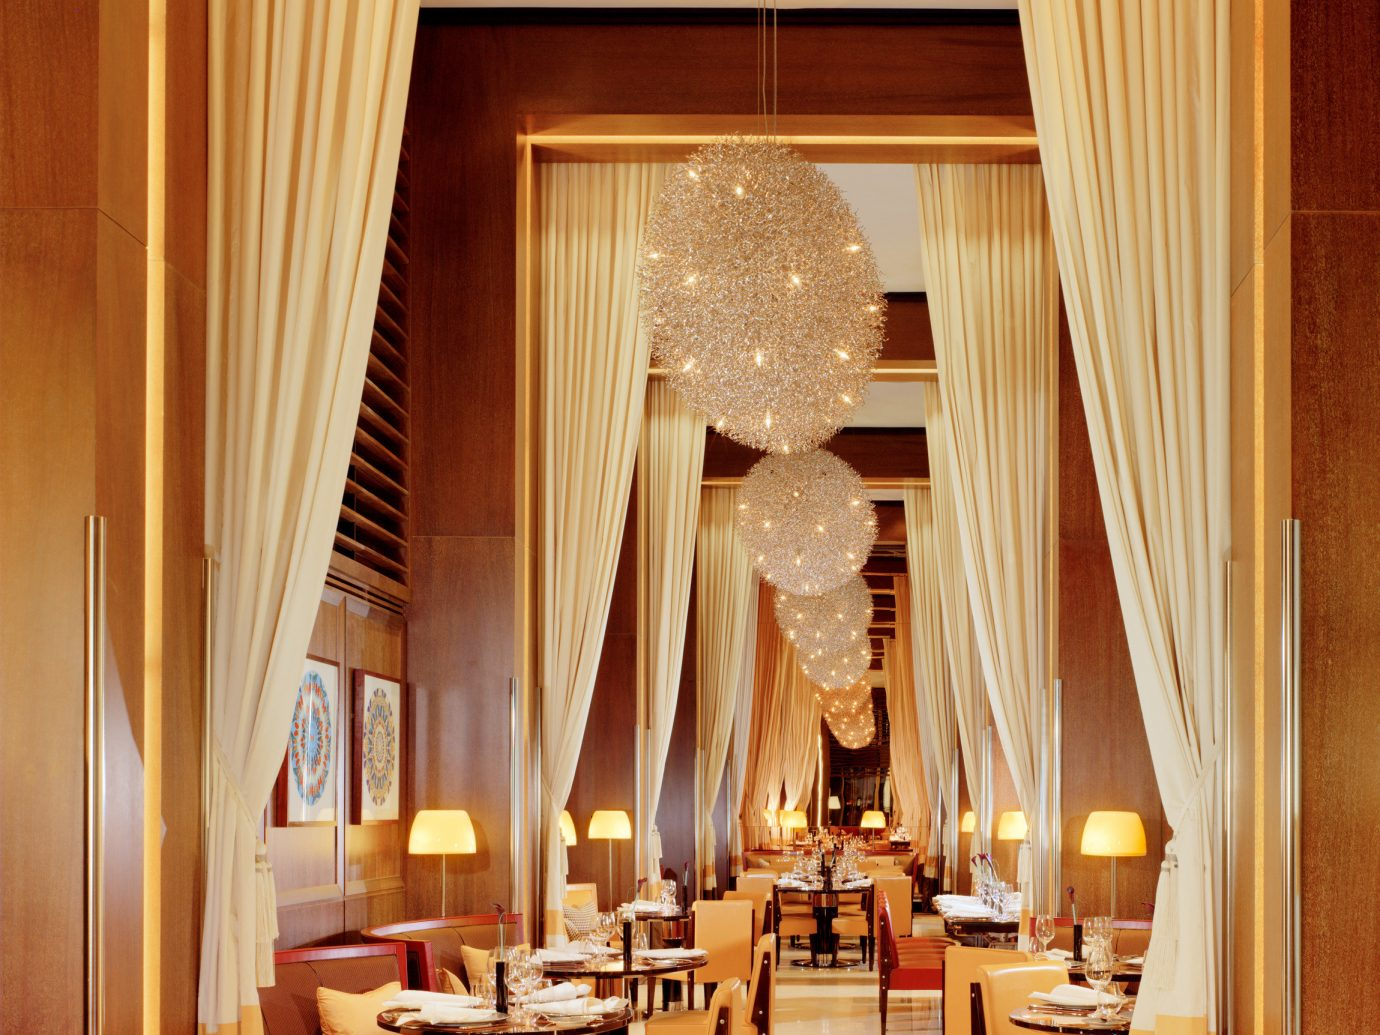 Dining room at 45 Park Lane CUT restaurant